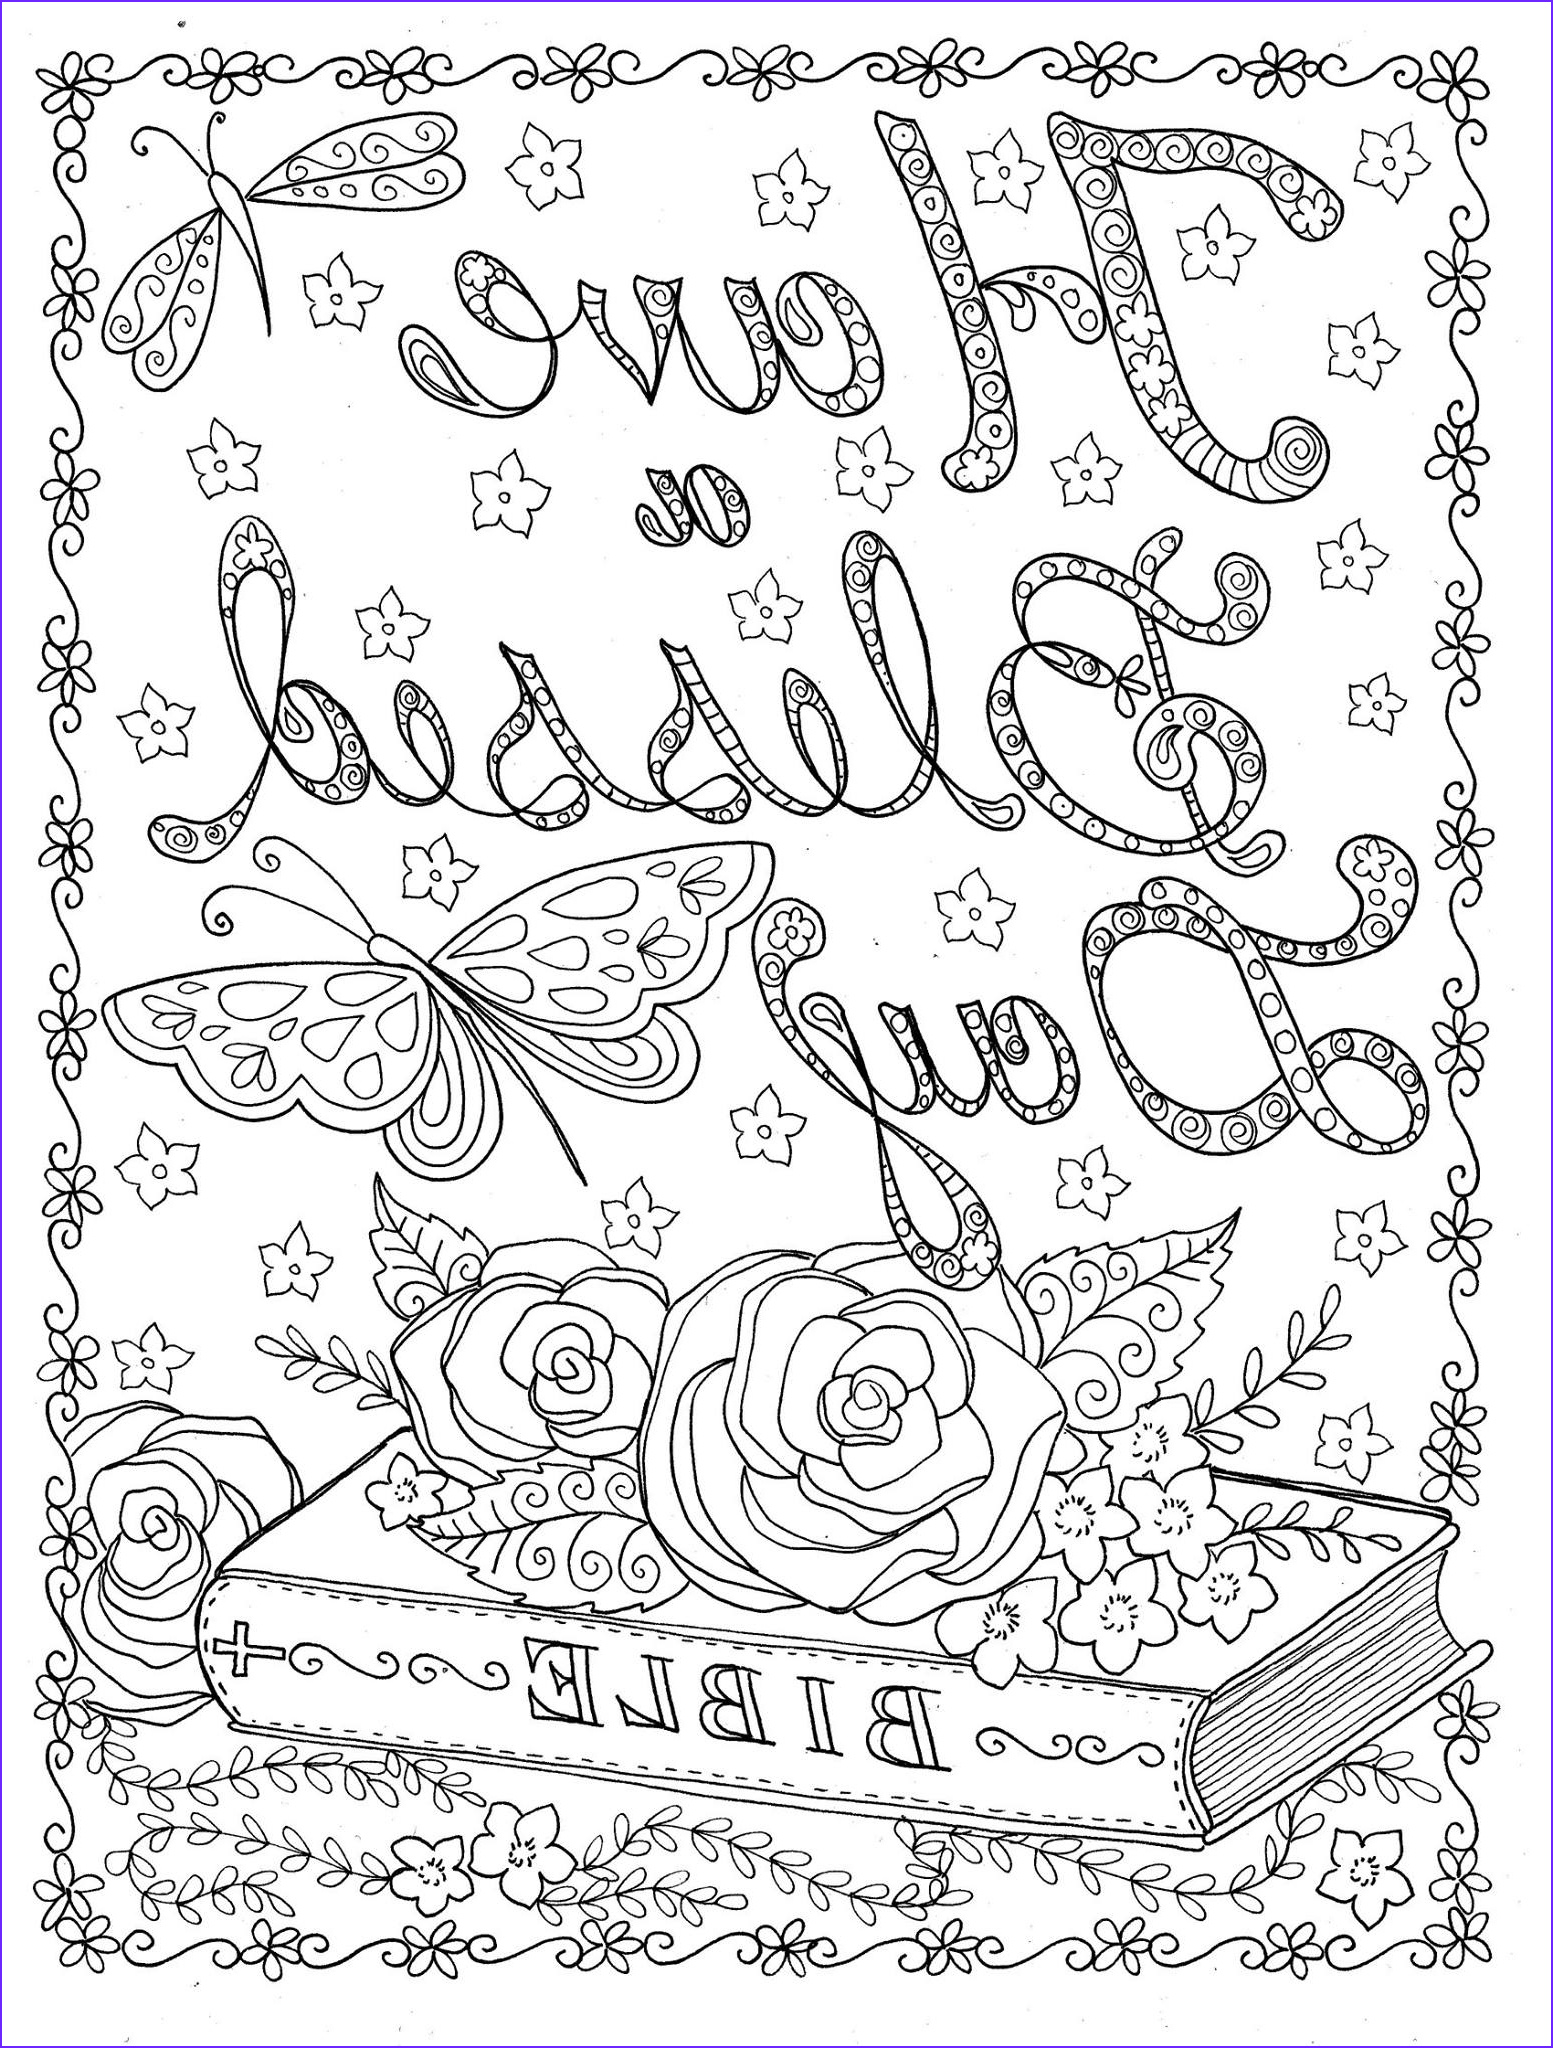 Coloring Pictures for Adults Inspirational Stock Free Printable Abstract Coloring Pages for Adults